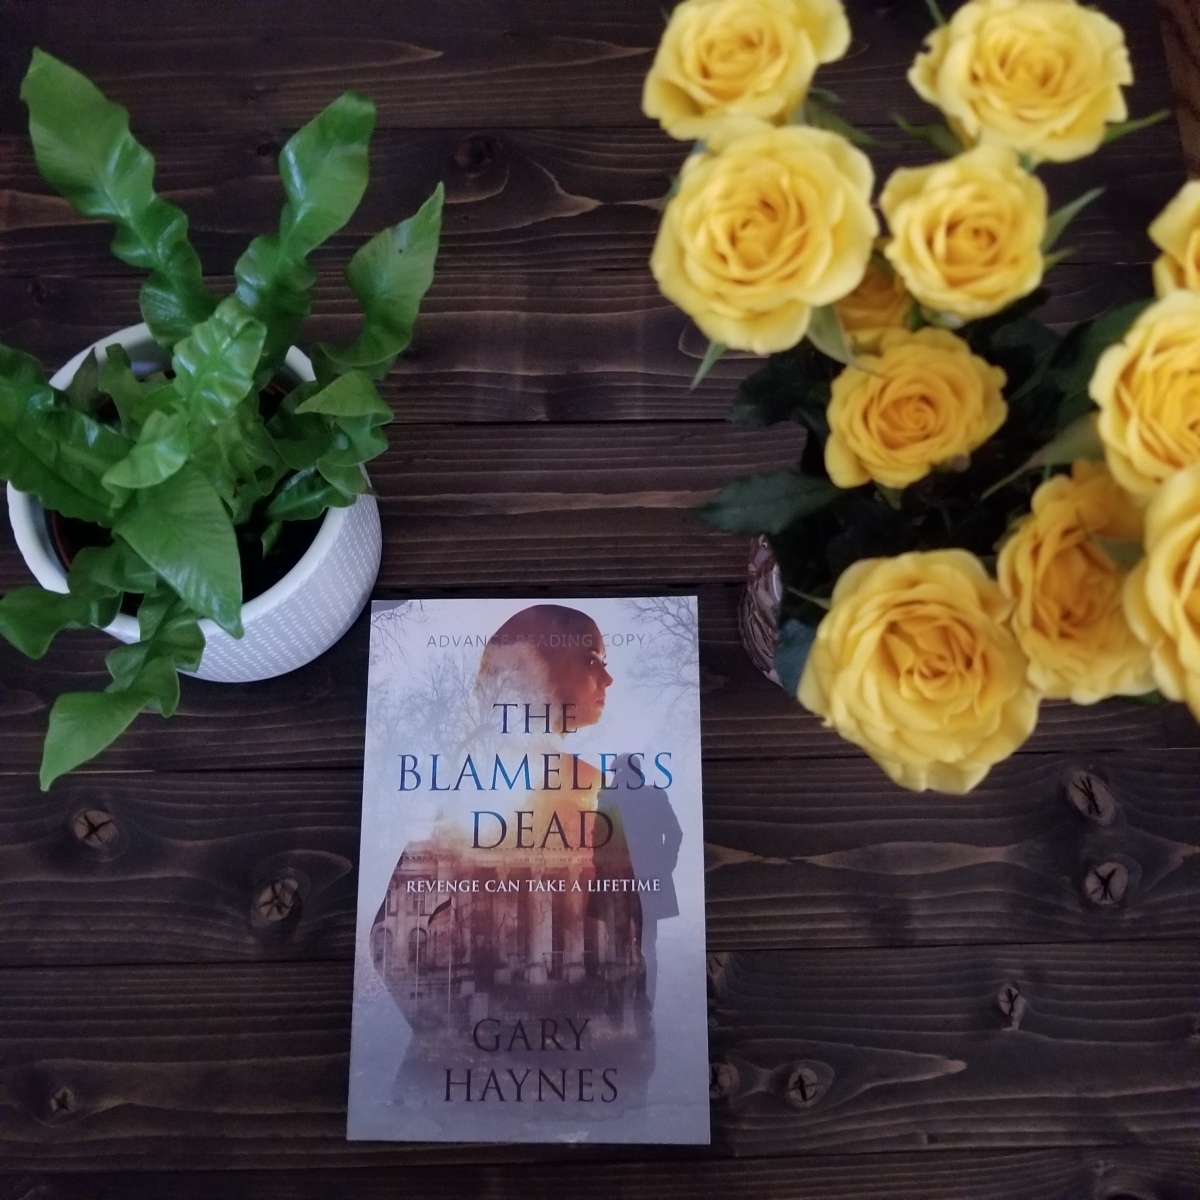 The Blameless Dead by Gary Haynes #bookreview #tarheelreader #thrblameless @garyhaynesnovel @endeavourquill #theblamelessdead